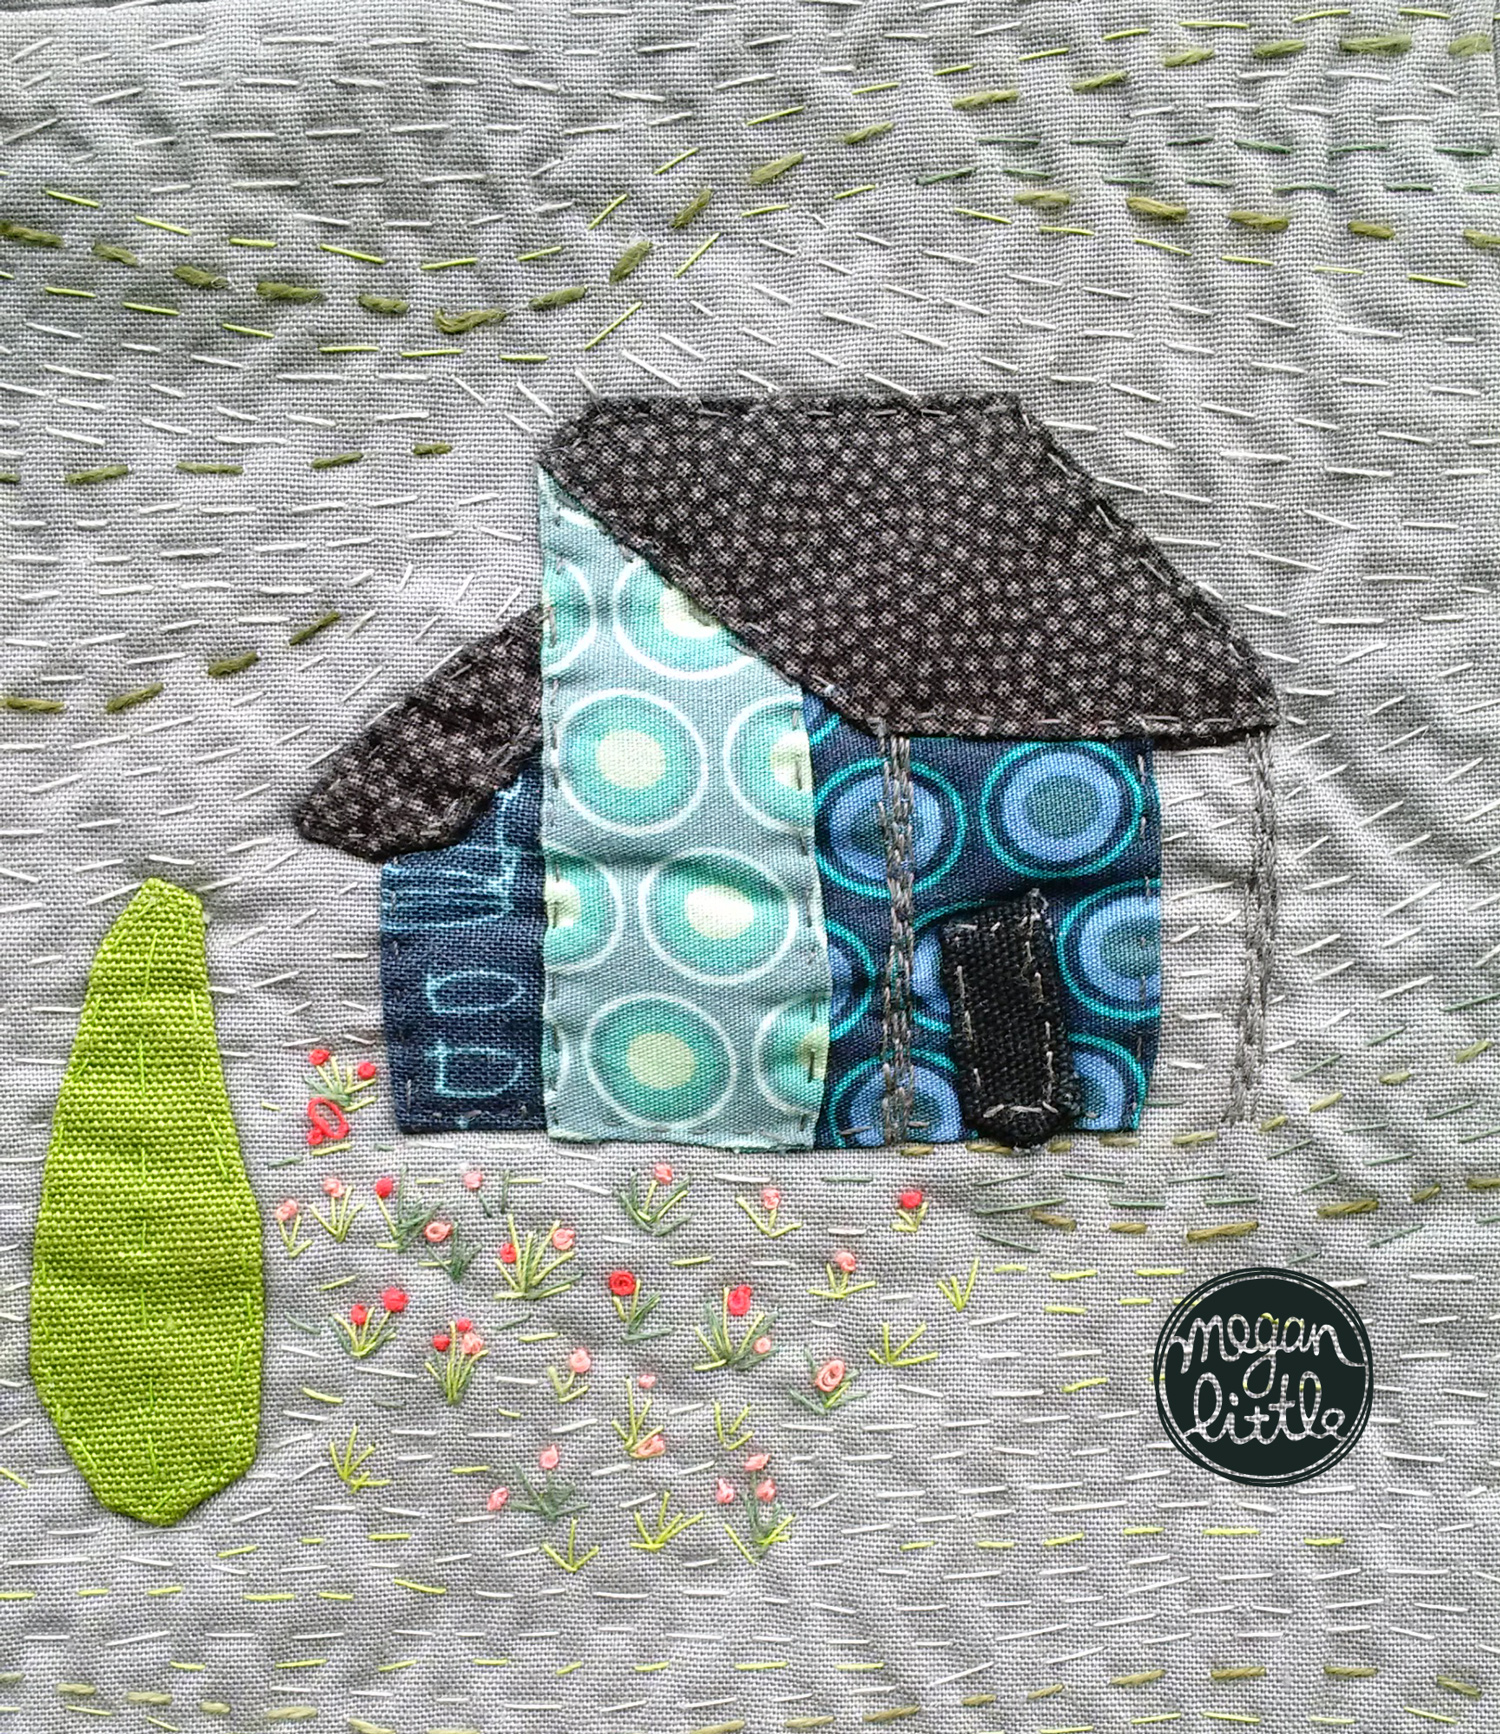 housequilt-close3_meganlittle.jpg